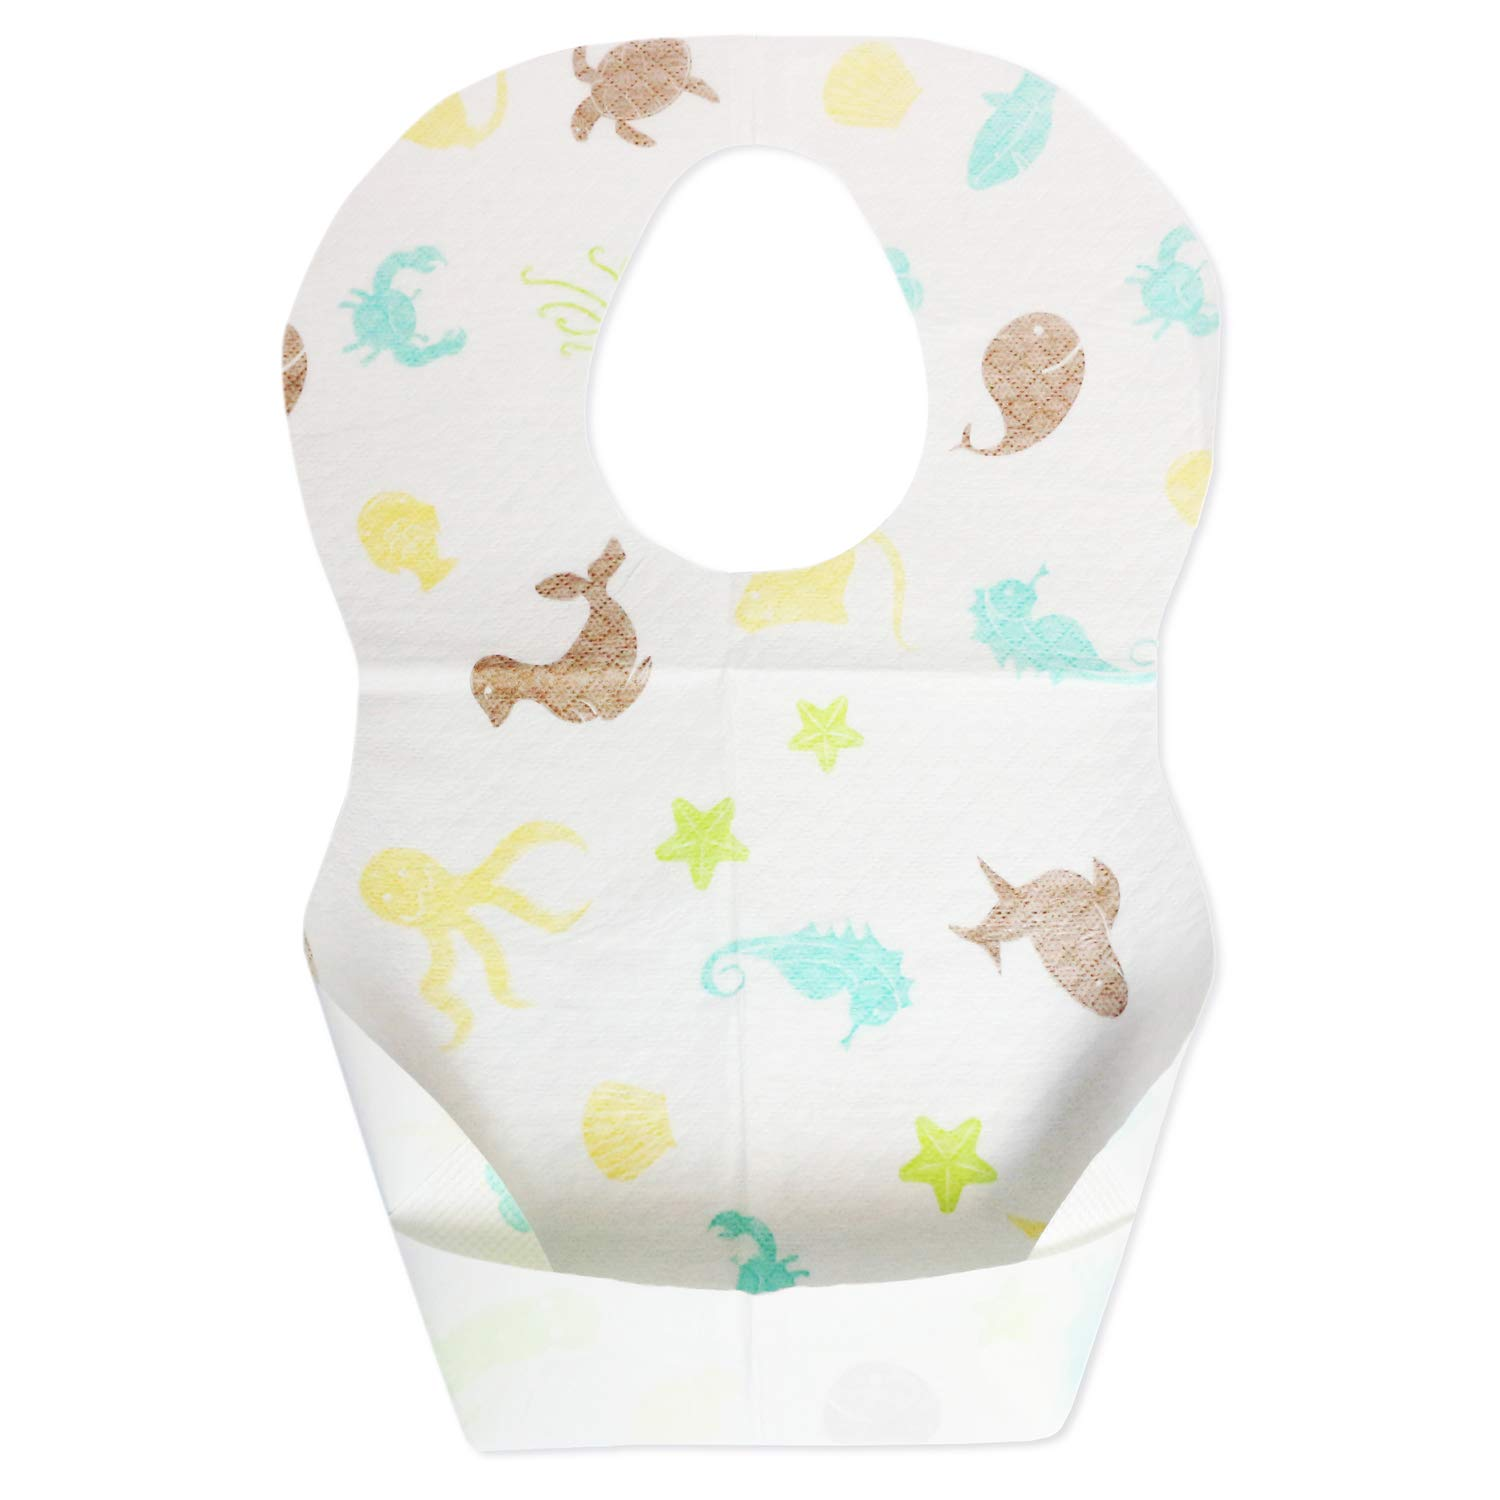 Emmzoe Baby and Infant Disposable Travel Bibs - Soft, Leakproof, Unisex, One Size Fits All - for Feeding, Traveling, On The Go - Sea Life (50 Pack)